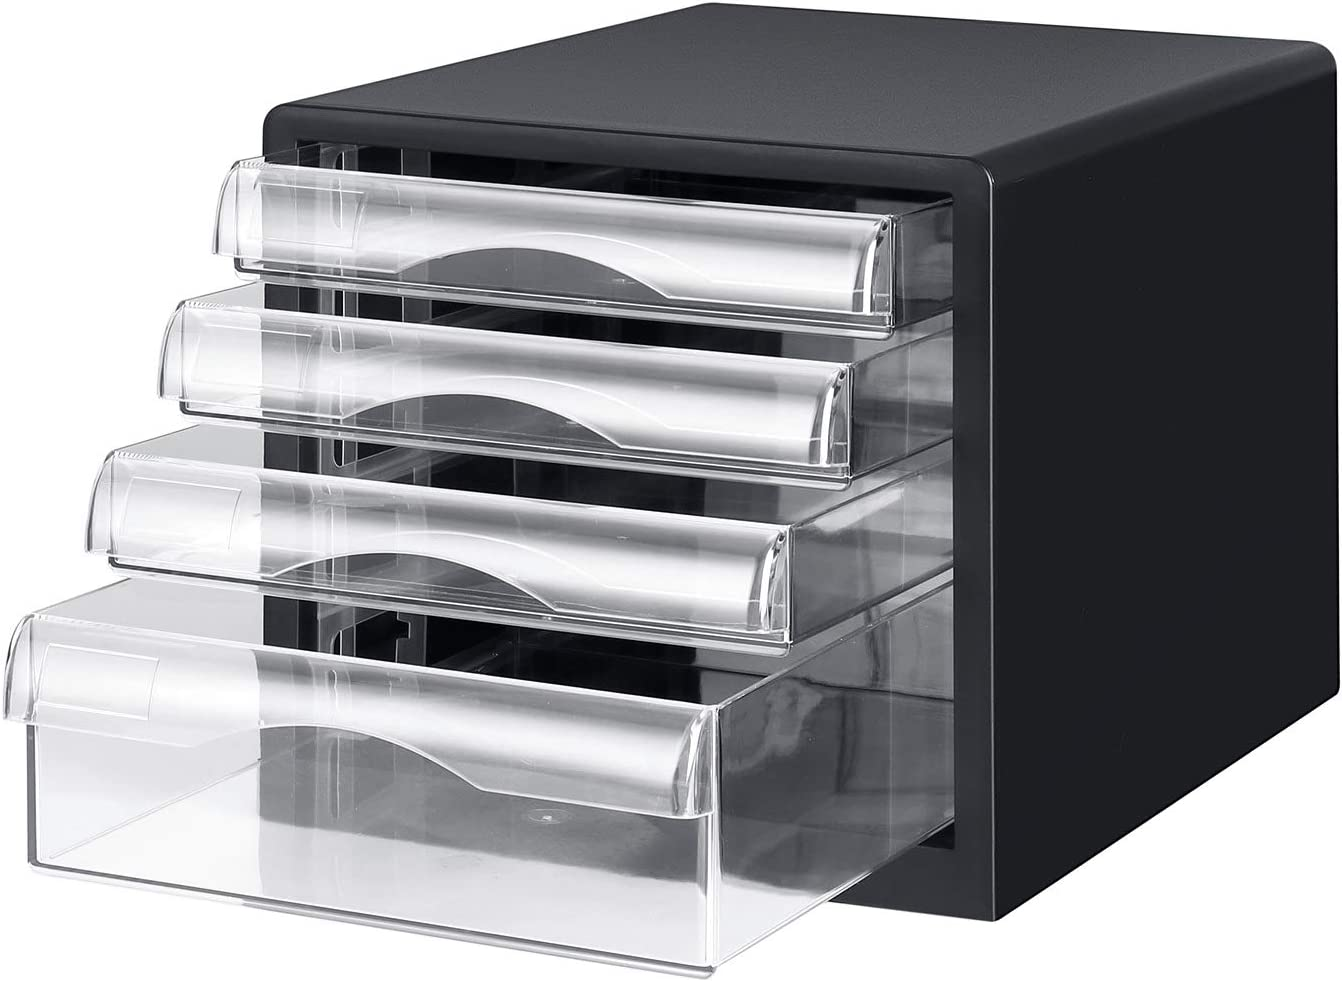 Plastic Desktop 4 Drawers File Organizer Home Office Desktop Organization for Office Supplies A4 Size File Storage Box with 4 Layers Clear Drawers Small Office Filling Cabinet for Paper Documents